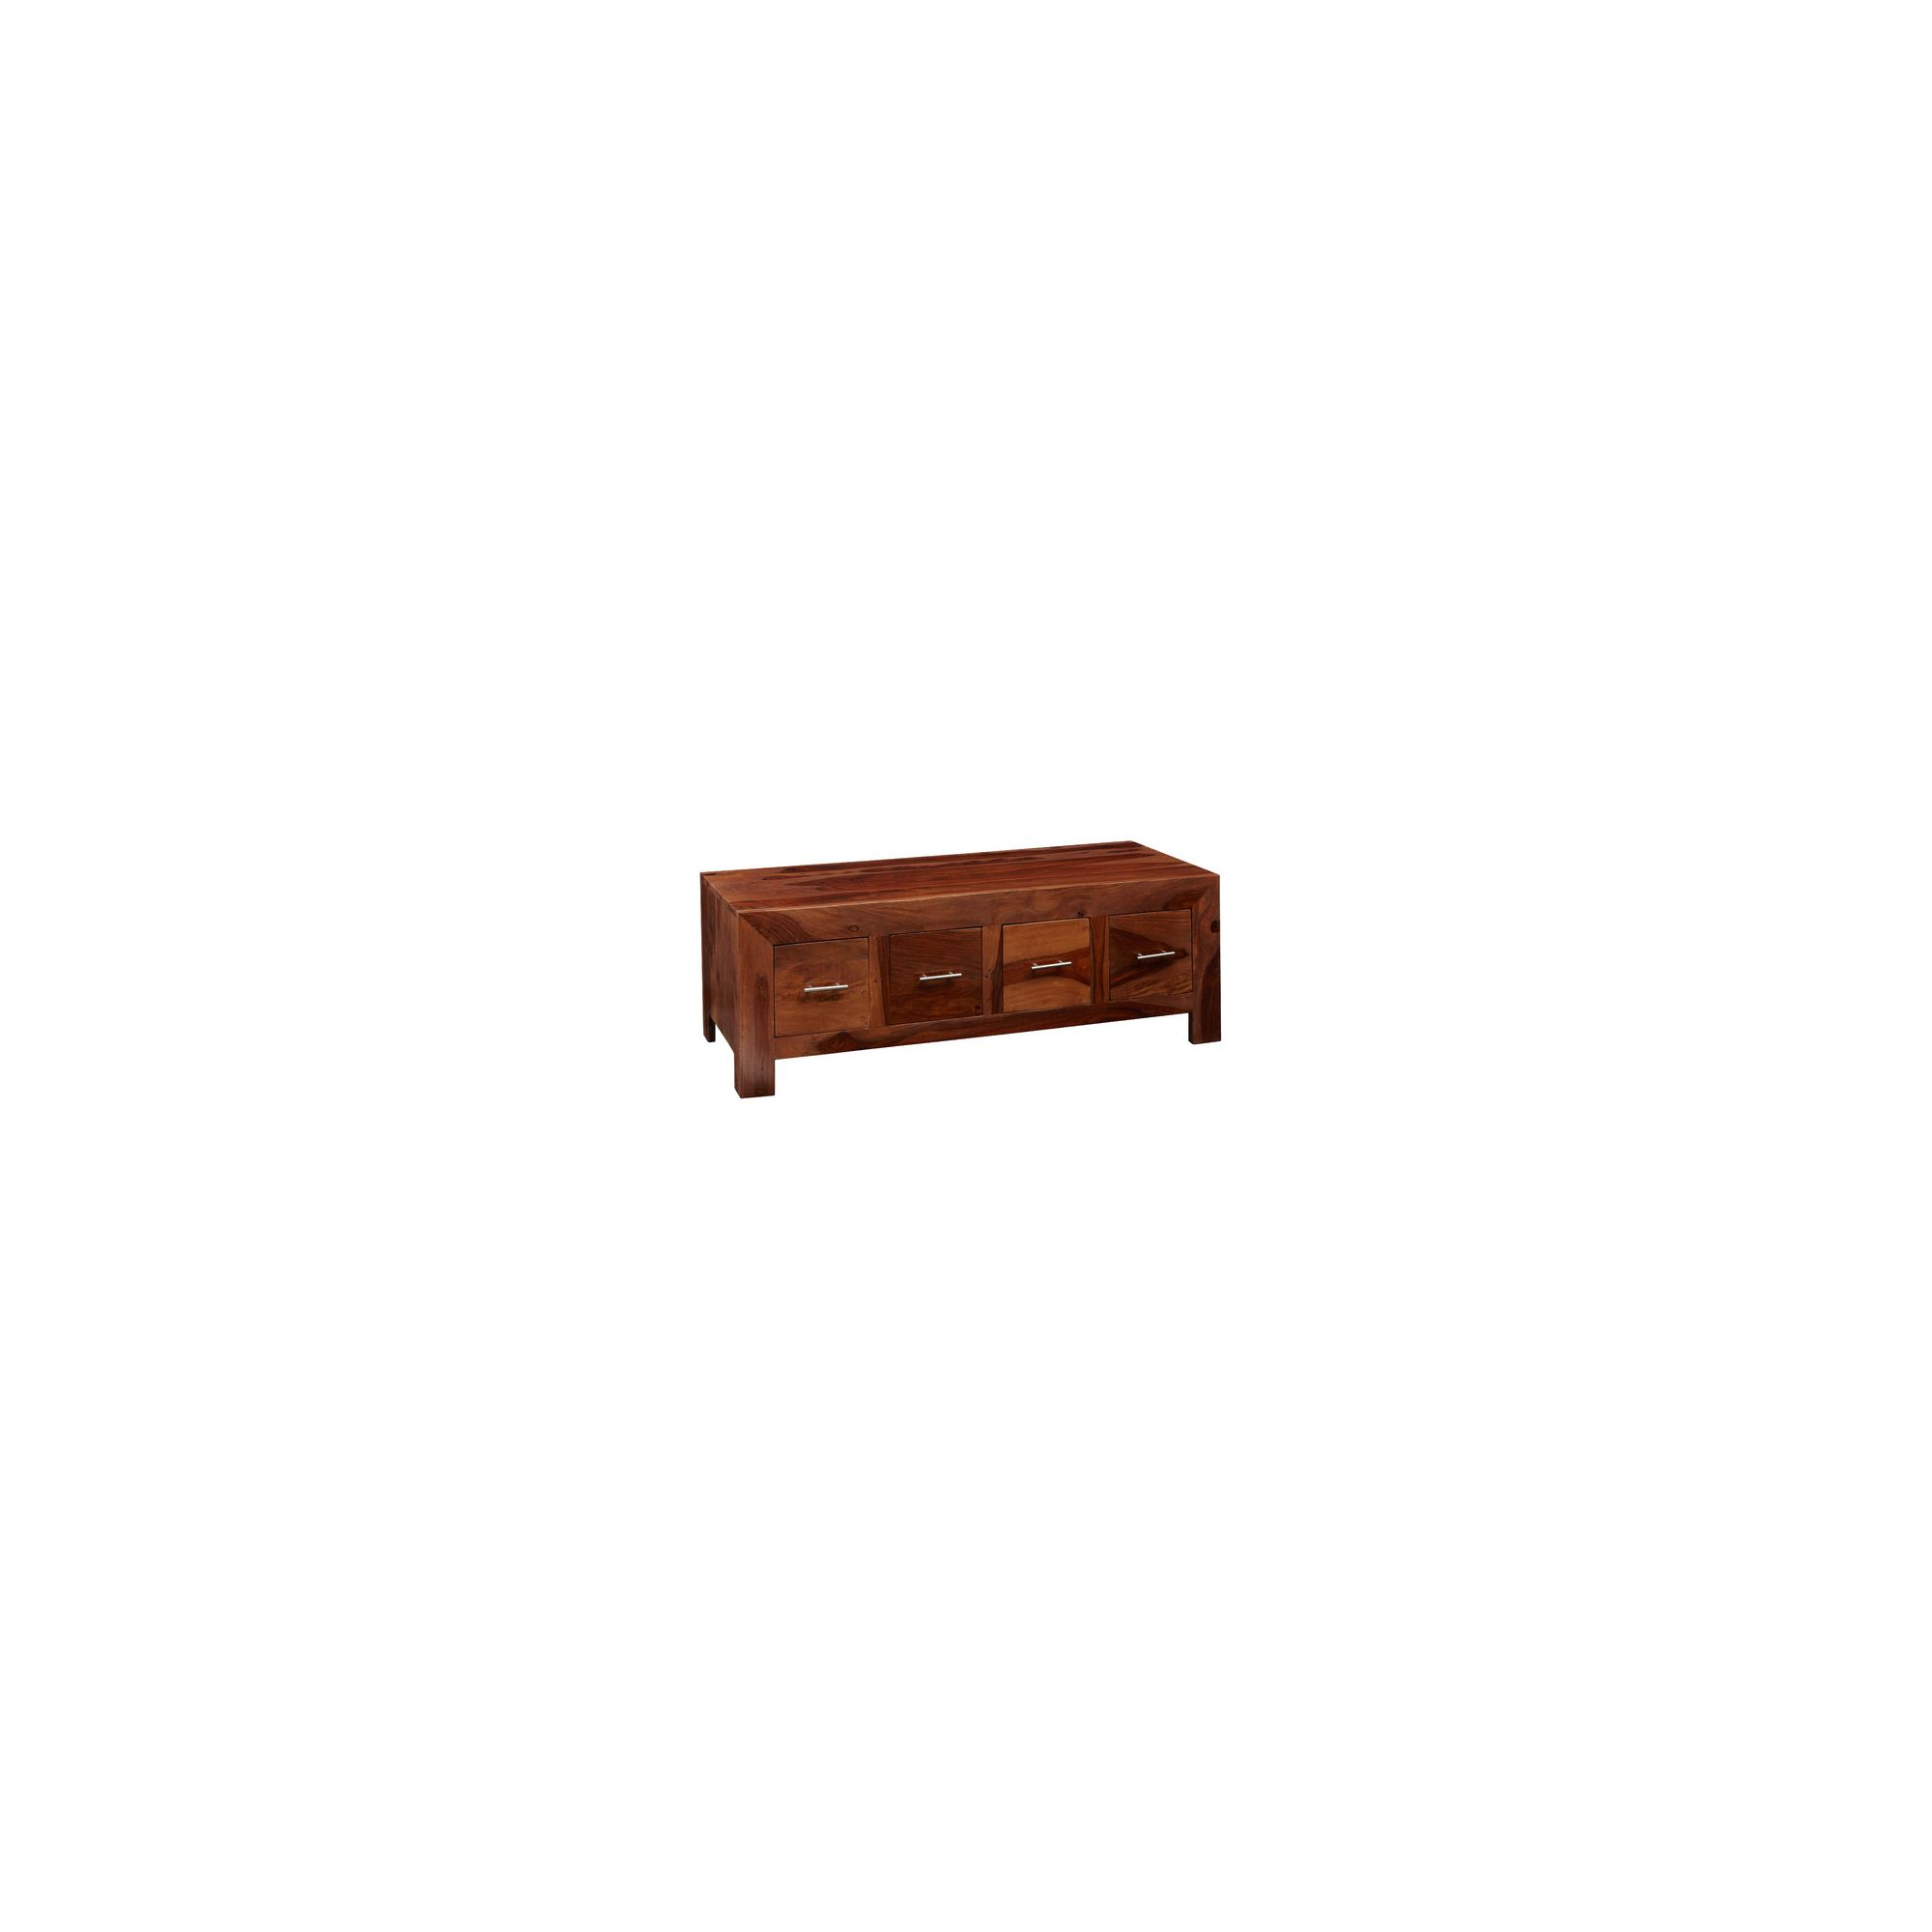 Indian Hub Cube Sheesham Trunk Coffee Table with Eight Drawers at Tesco Direct